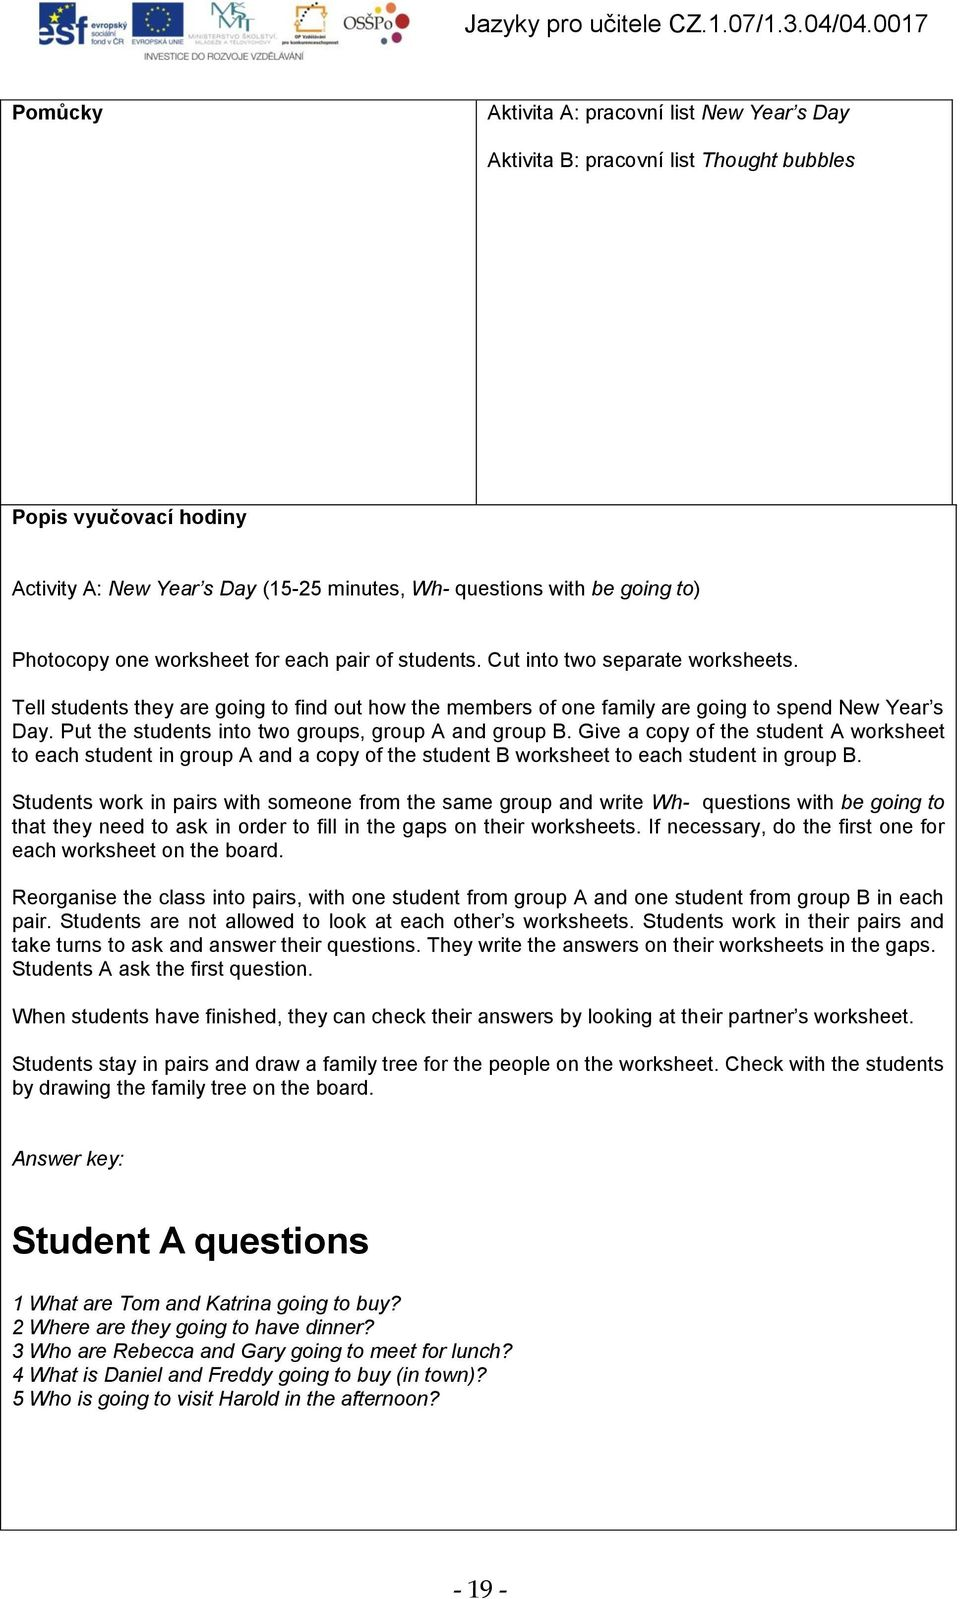 Put the students into two groups, group A and group B. Give a copy of the student A worksheet to each student in group A and a copy of the student B worksheet to each student in group B.